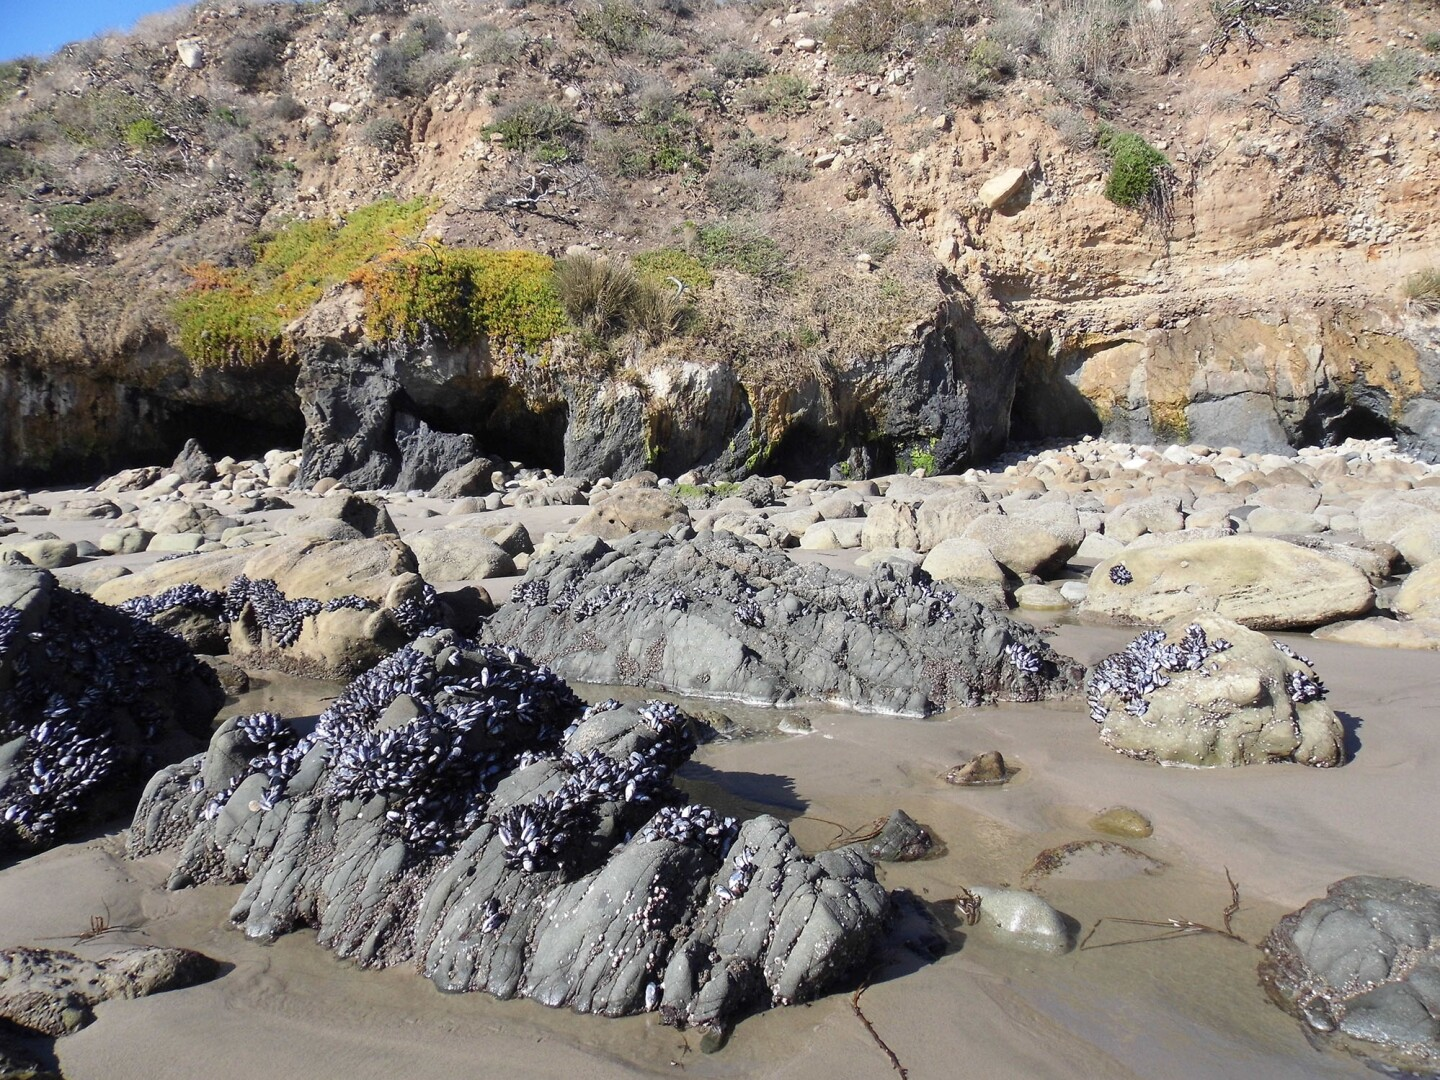 At low tide, Nicholas Canyon County Beach reveals mussels, clams and sea anemones clinging onto the rocks on the shore.